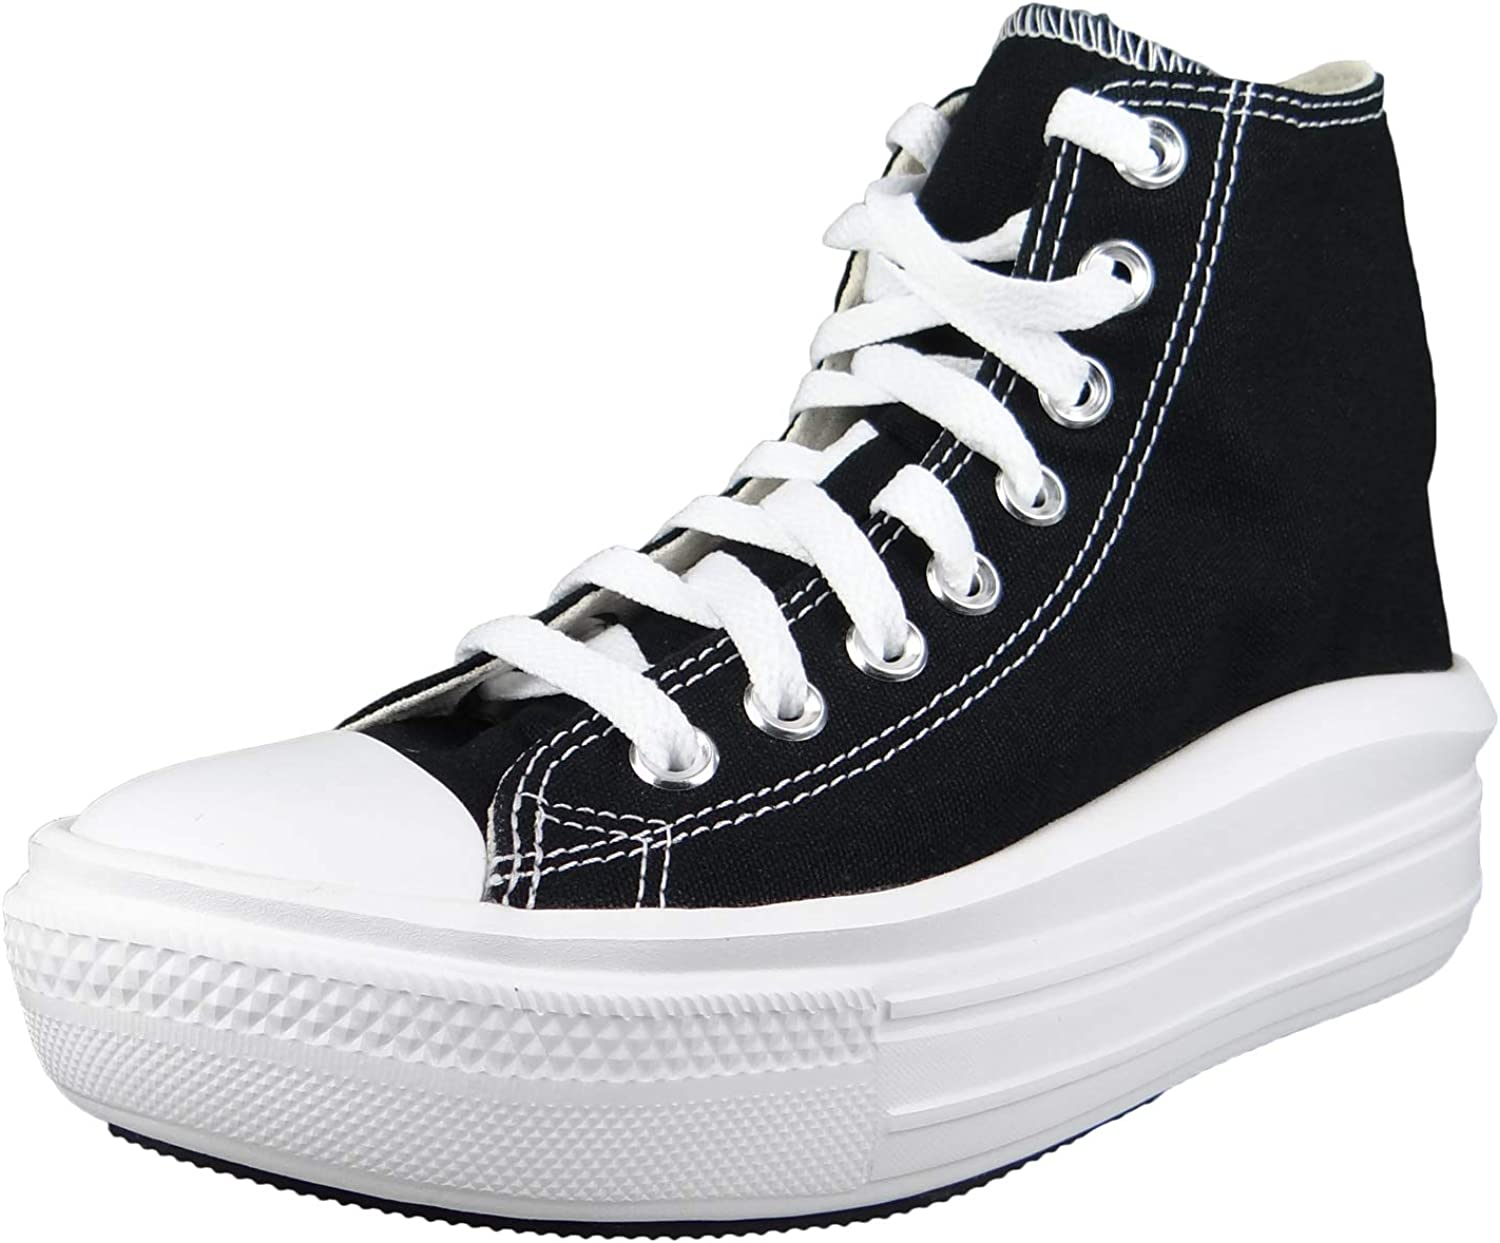 Converse Women's Sneakers Low-Top Gifts Some reservation